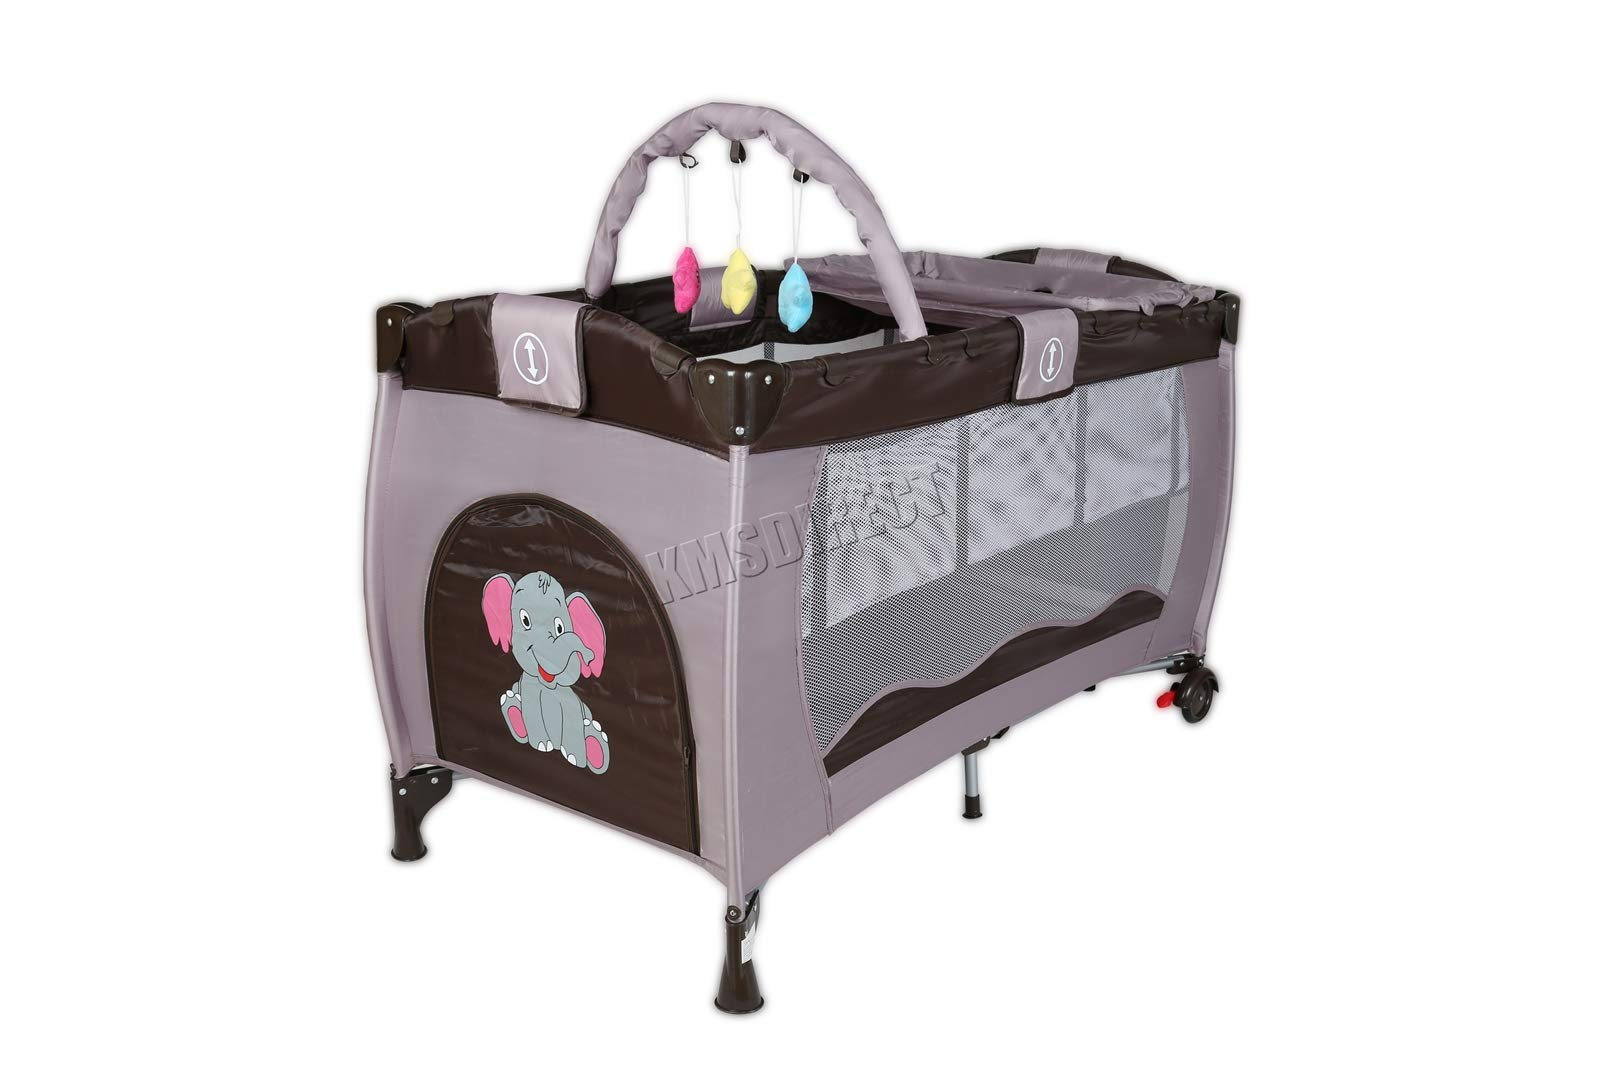 FoxHunter Portable Baby Cot Sleeping Bed Kids Infant Playpen Bassinet Child Play Pen with Entryway Travel BCB01 Coffee FoxHunter Travel cot easy to assemble and disassemble thanks to folding mechanism; igh quality and light weight; Fast and easy set-up, safe material and easy to clean; 3